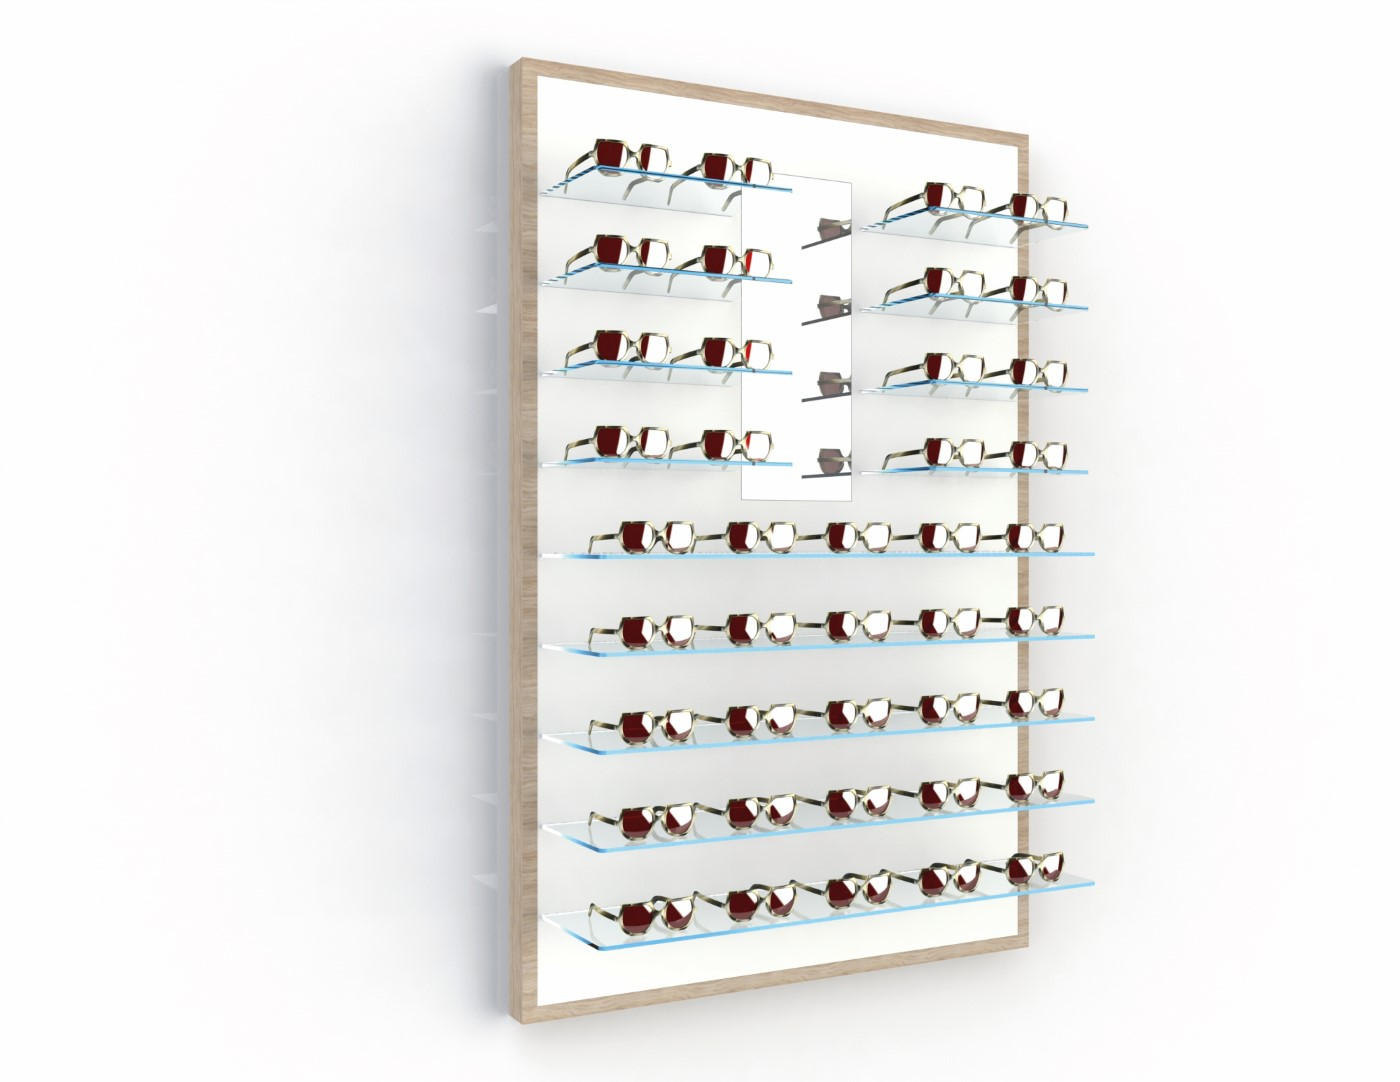 <strong>#58131ST</strong><br>13x 6mm crystal clear shelves<br>Mirror<br>41 frames